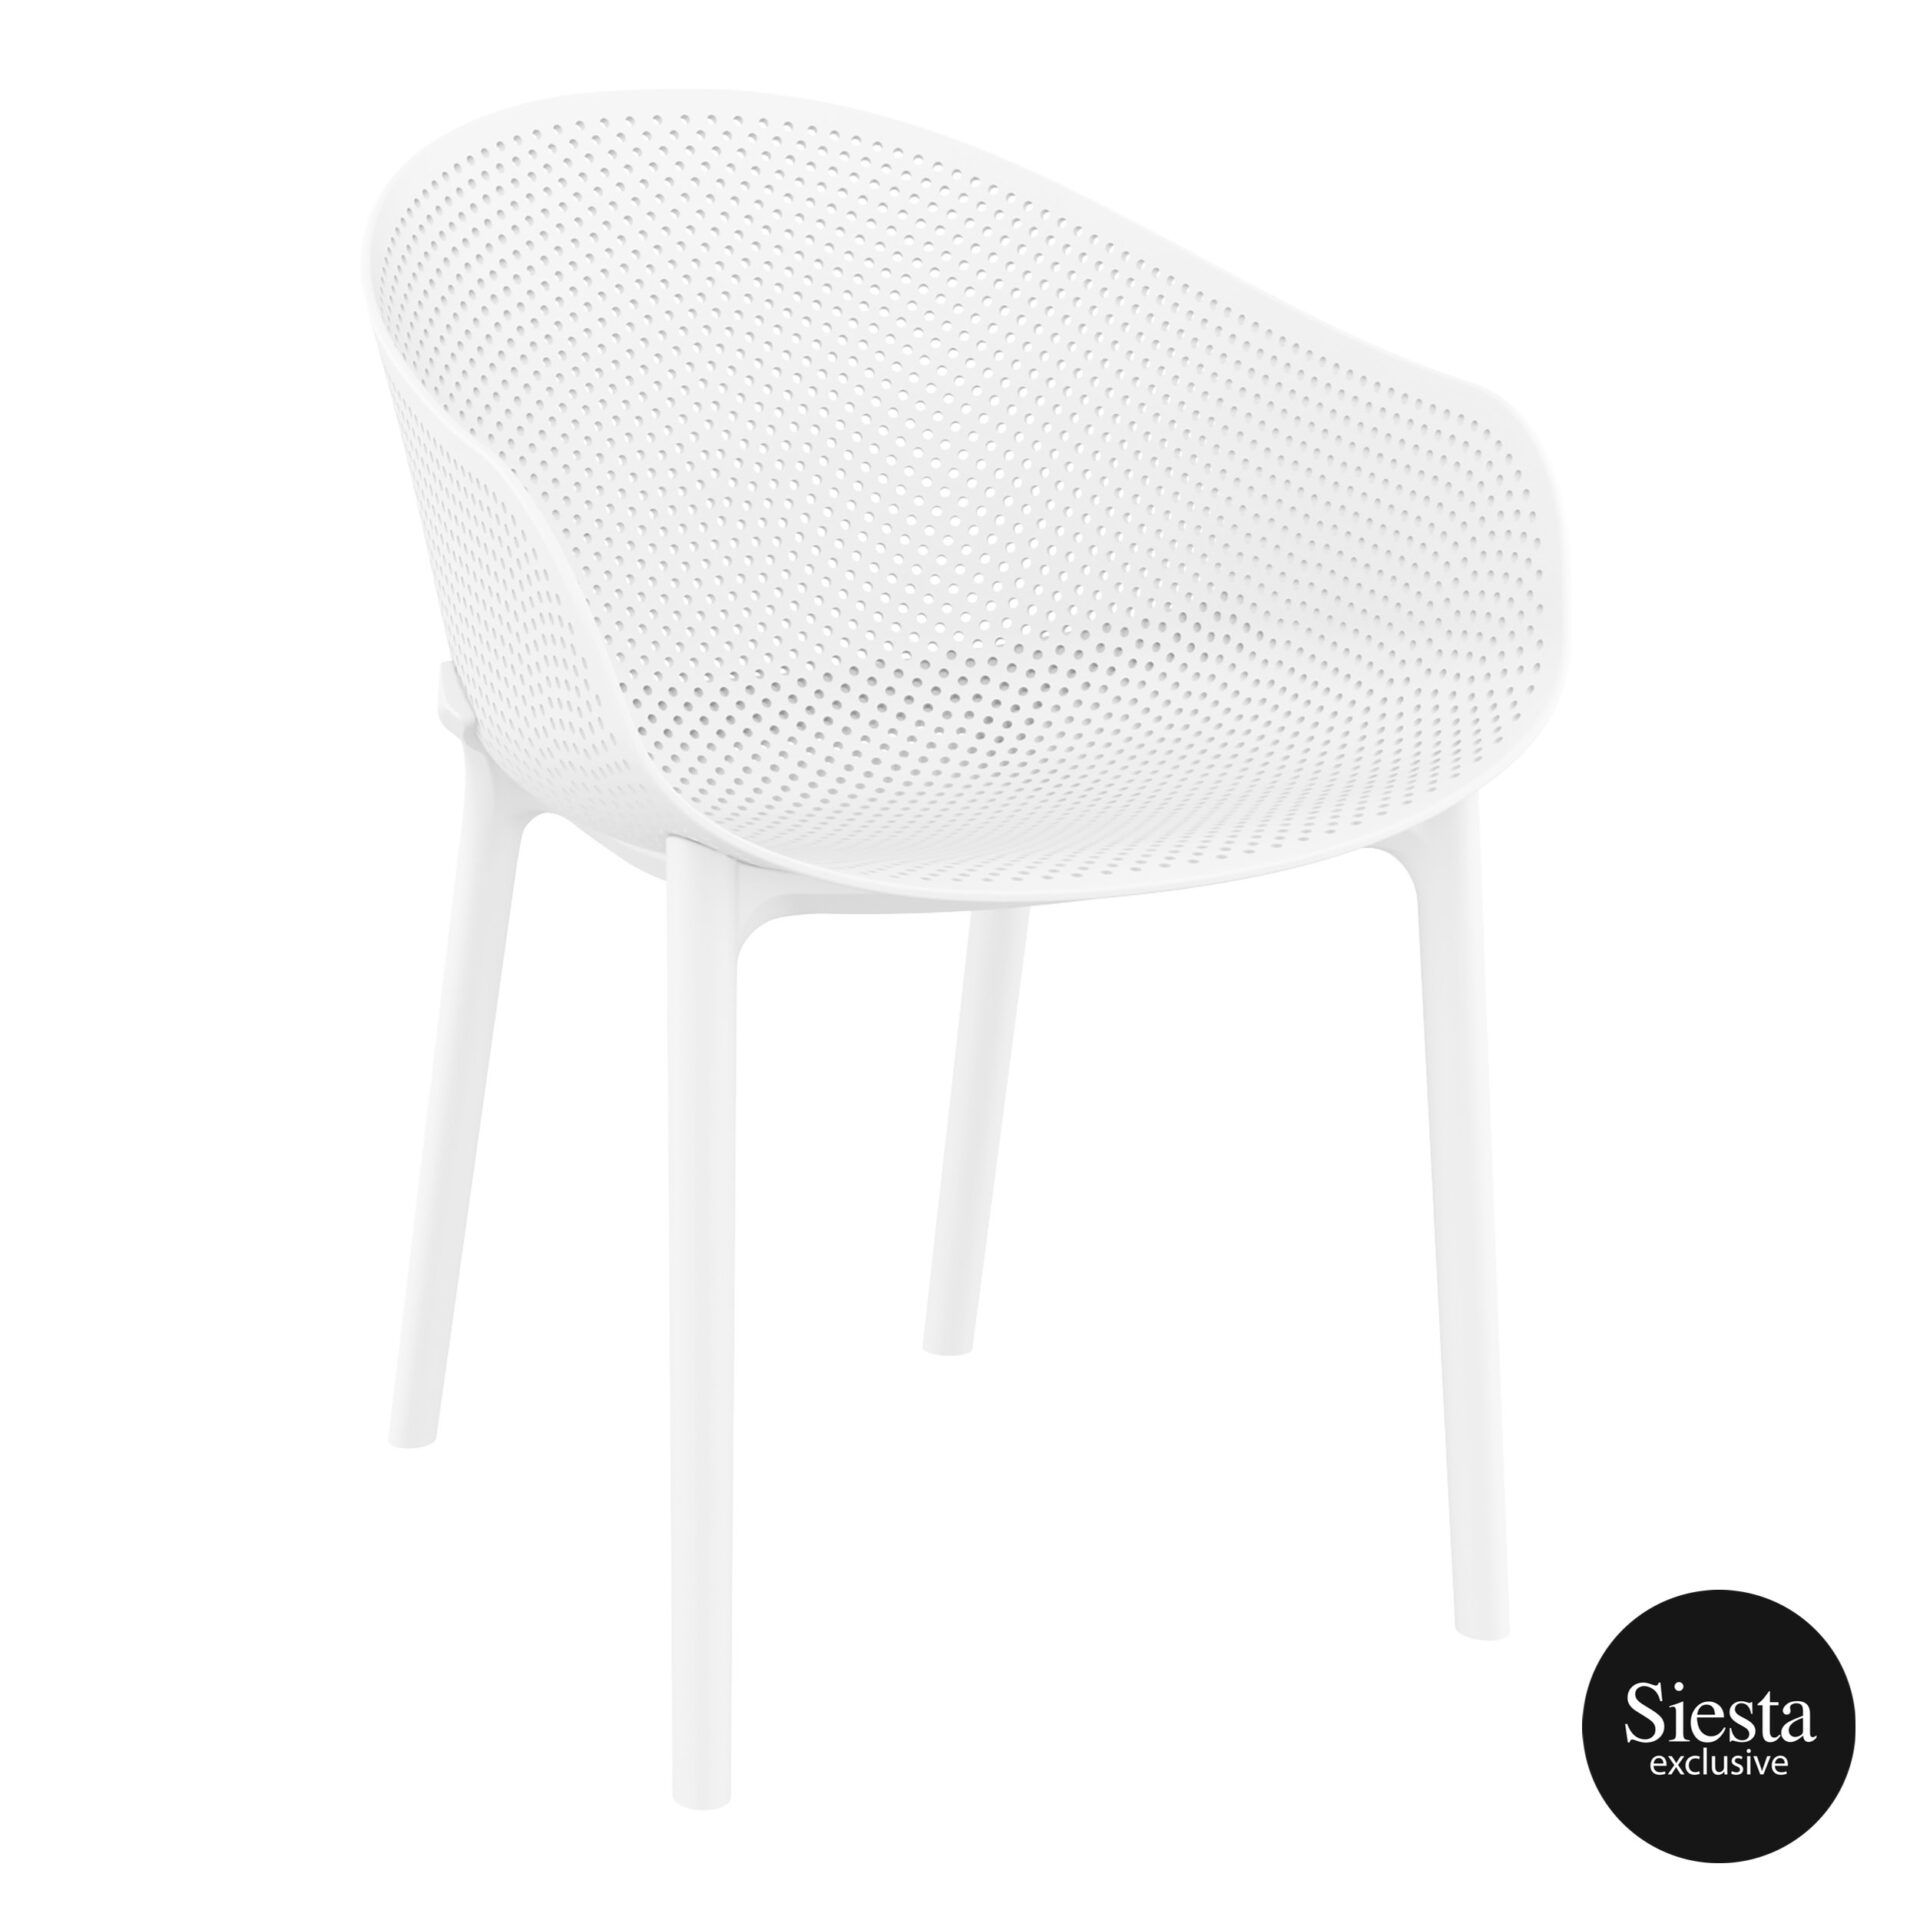 outdoor seating polypropylene sky chair white front side 1